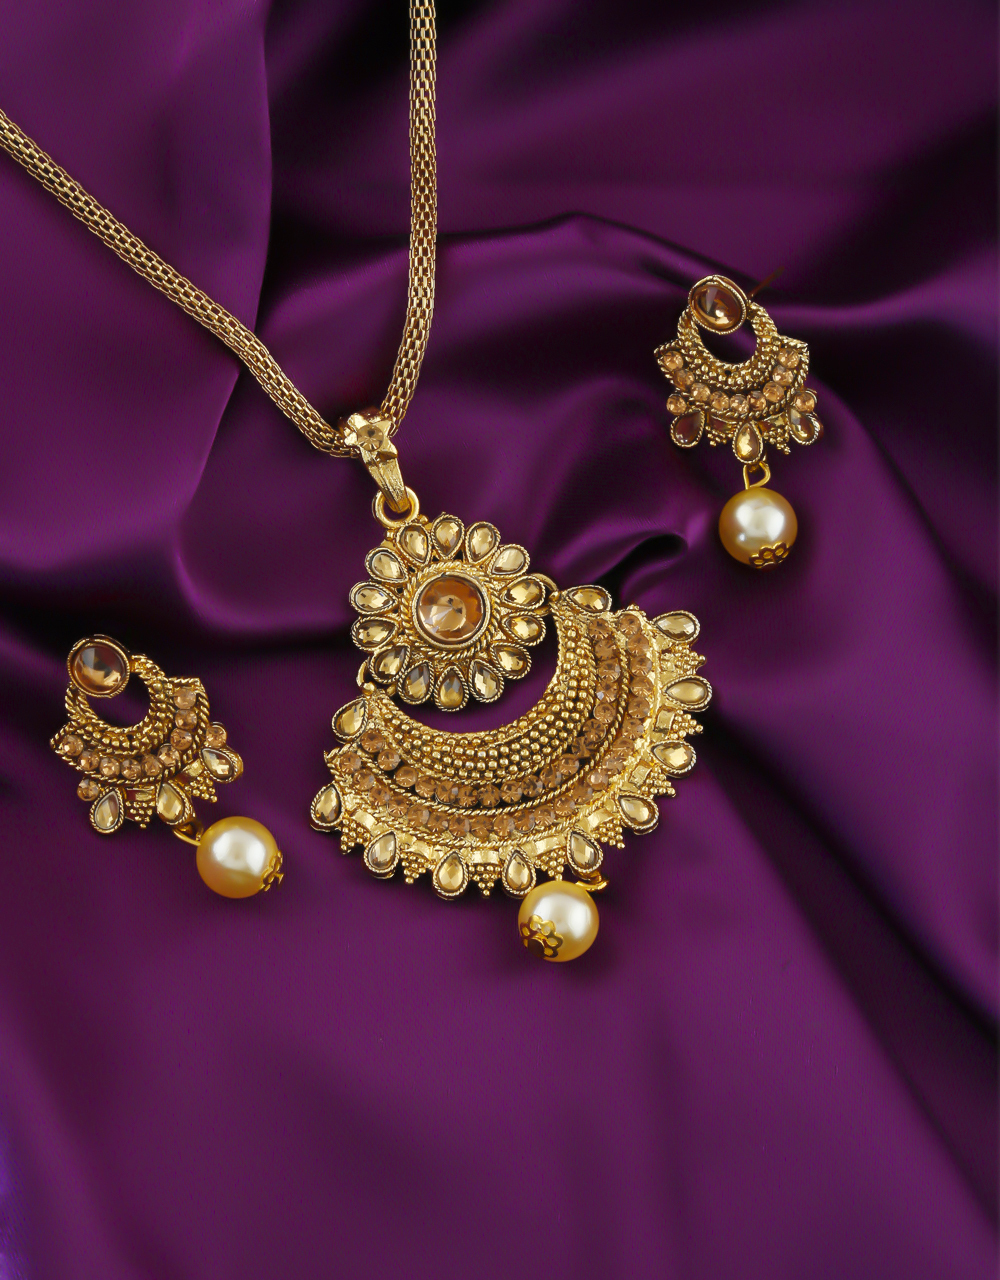 Floral Design Gold Finish Stunning Wedding Pendant Set